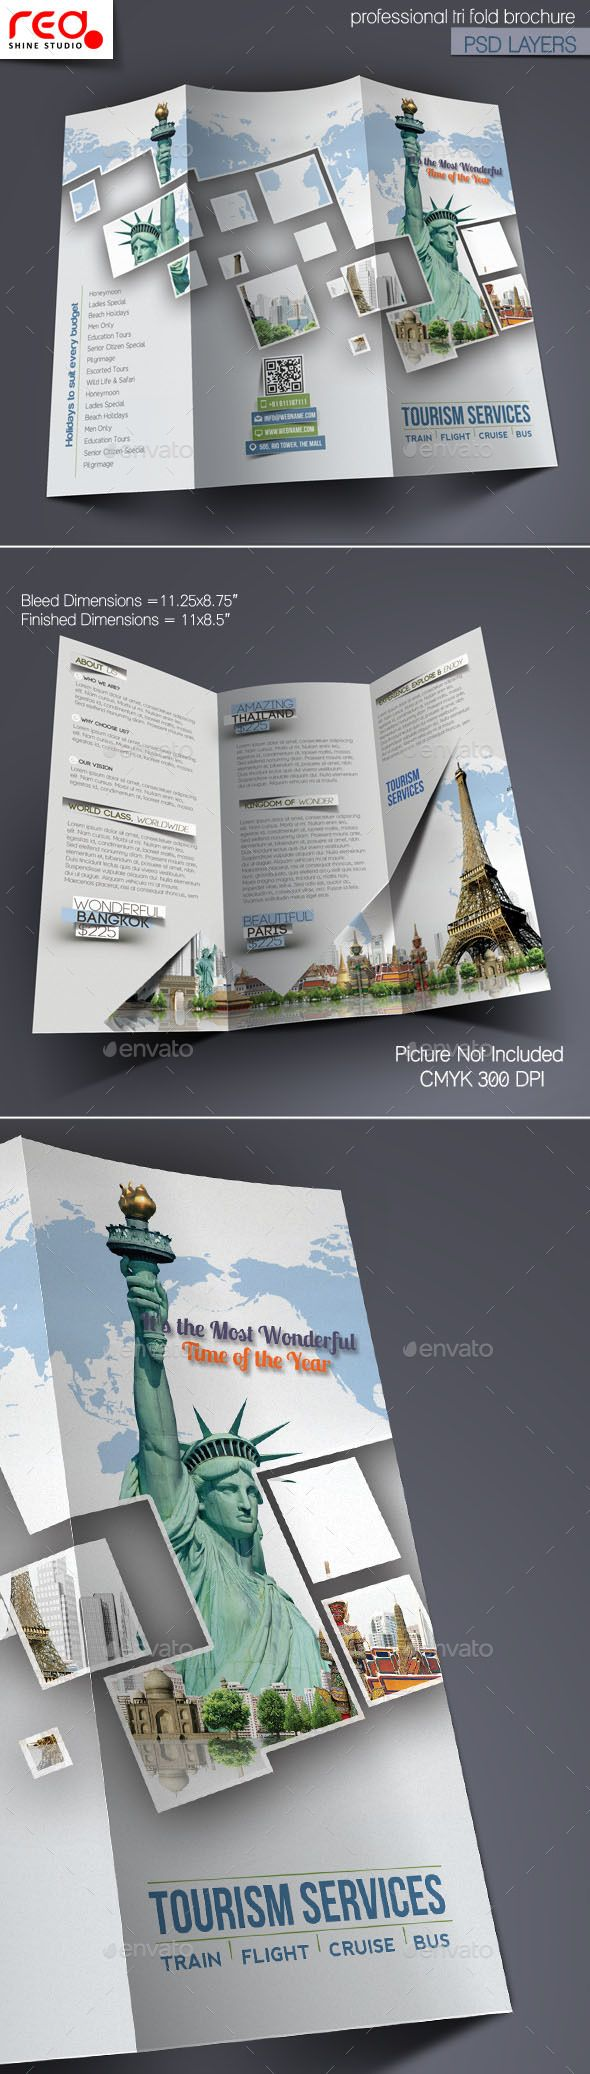 Tourism Service Trifold Brochure Template (CS, 8.5x11, ad, adventure poster, advertising, brochure, business, catalog, corporate, cover, elegant, exotic, guide, holidays, hotel presentation, journey, packages, pamphlet, promotion, stylish, template, tourism, tourist, travel agency, traveling, tri-fold, tri-fold brochure, trifold, tropical, vacations)